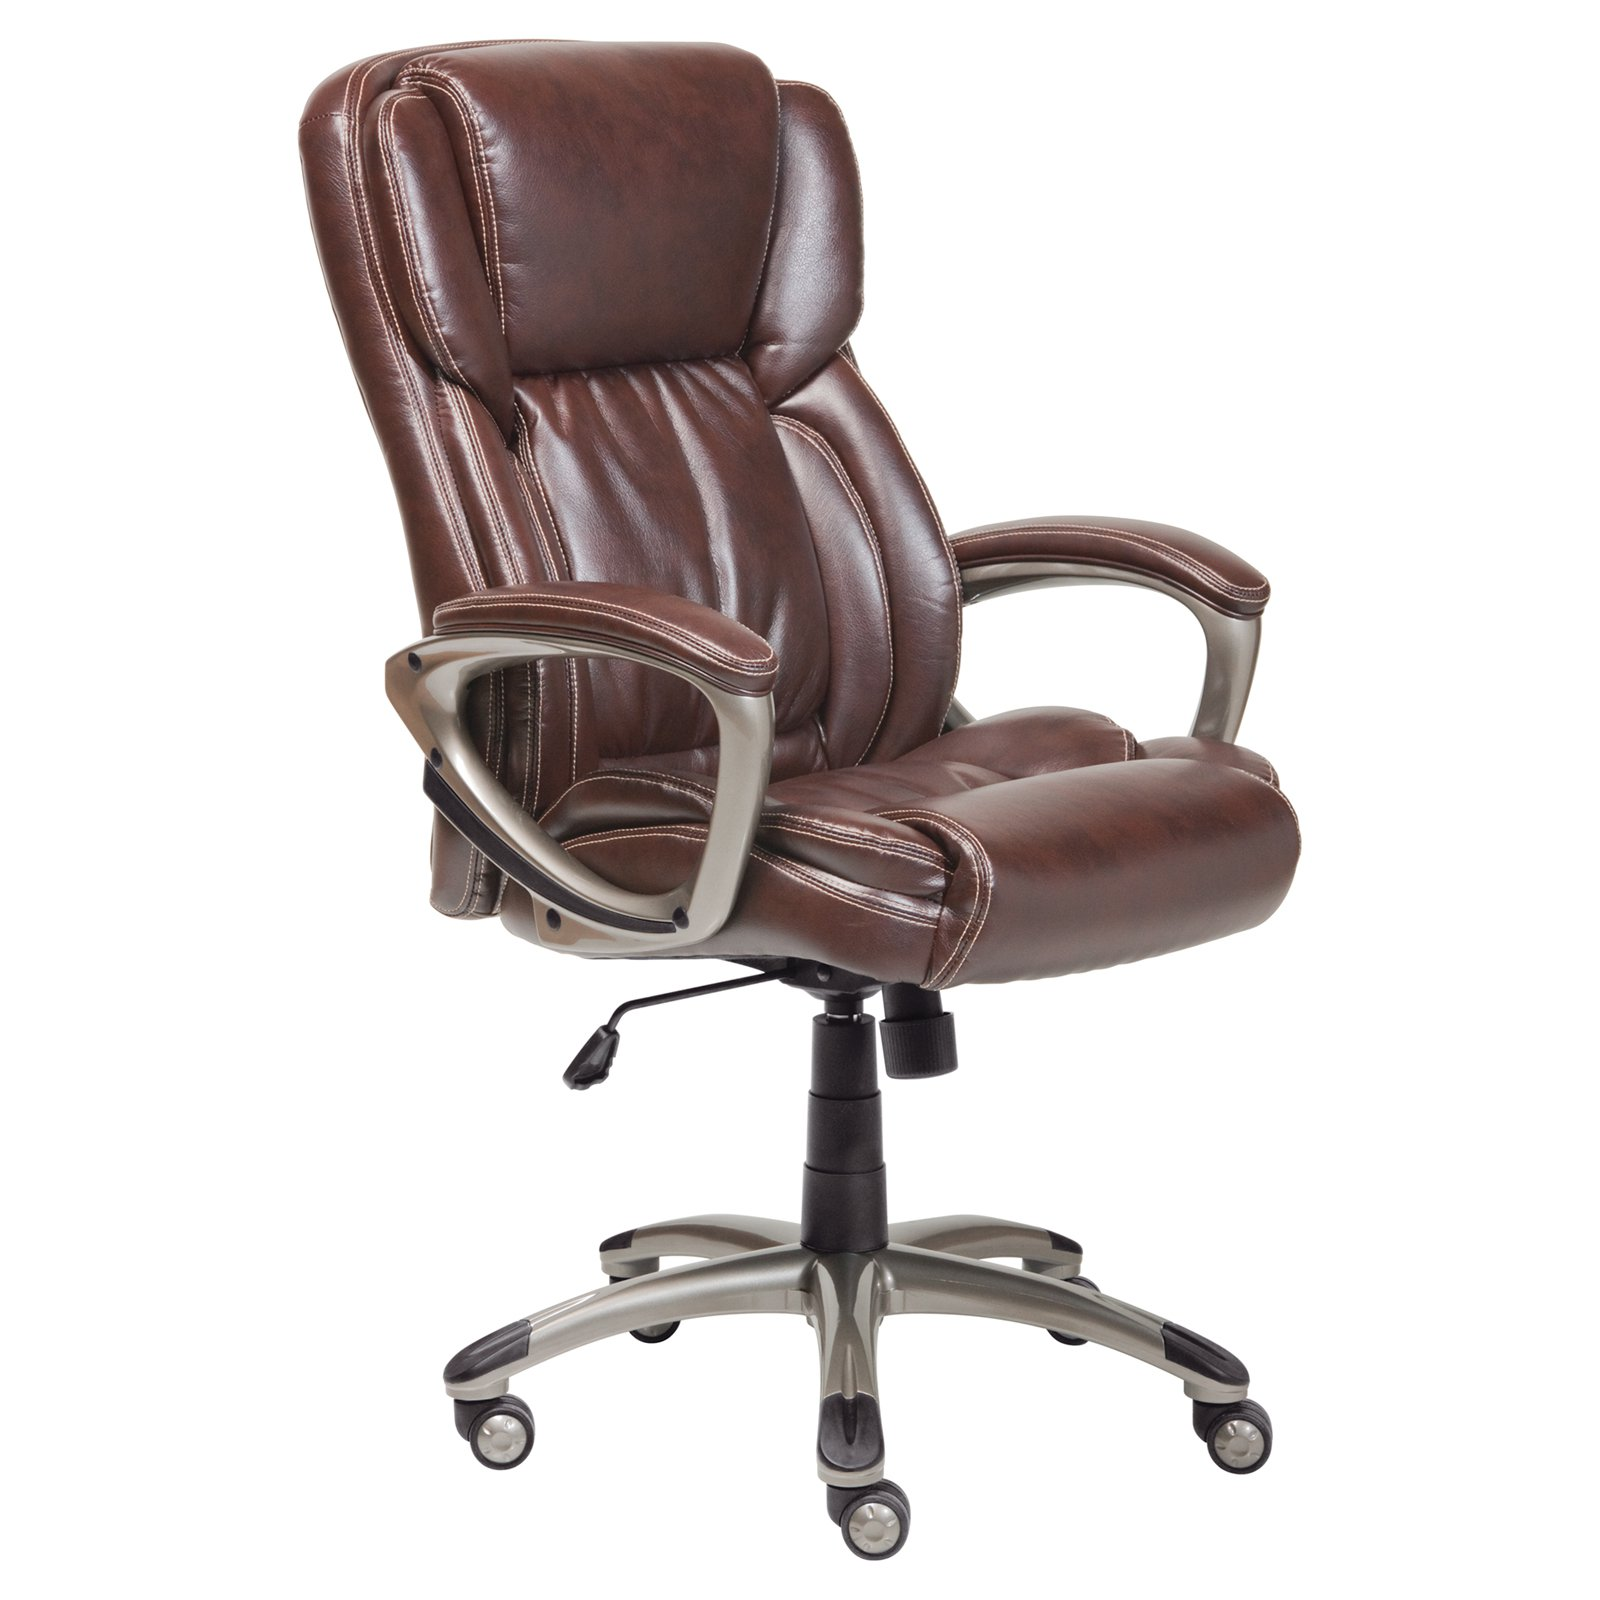 Serta Works Executive Office Chair - Walmart.com